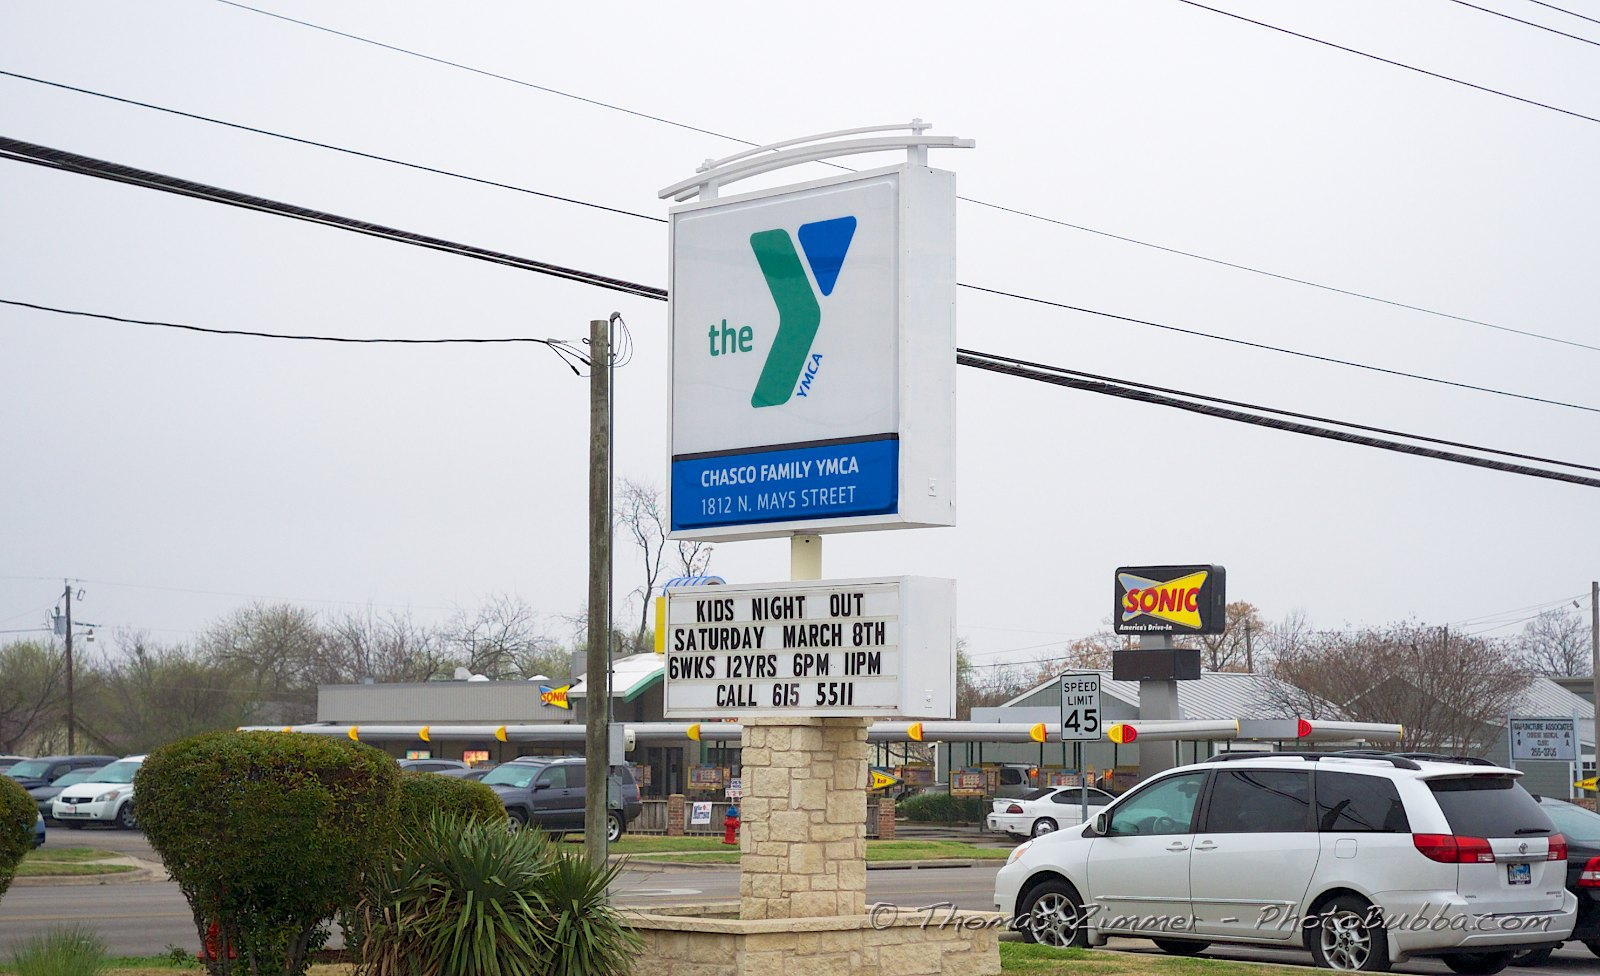 Sunday at HCBC at Chasco YMCA in Round Rock | Tom Zimmer